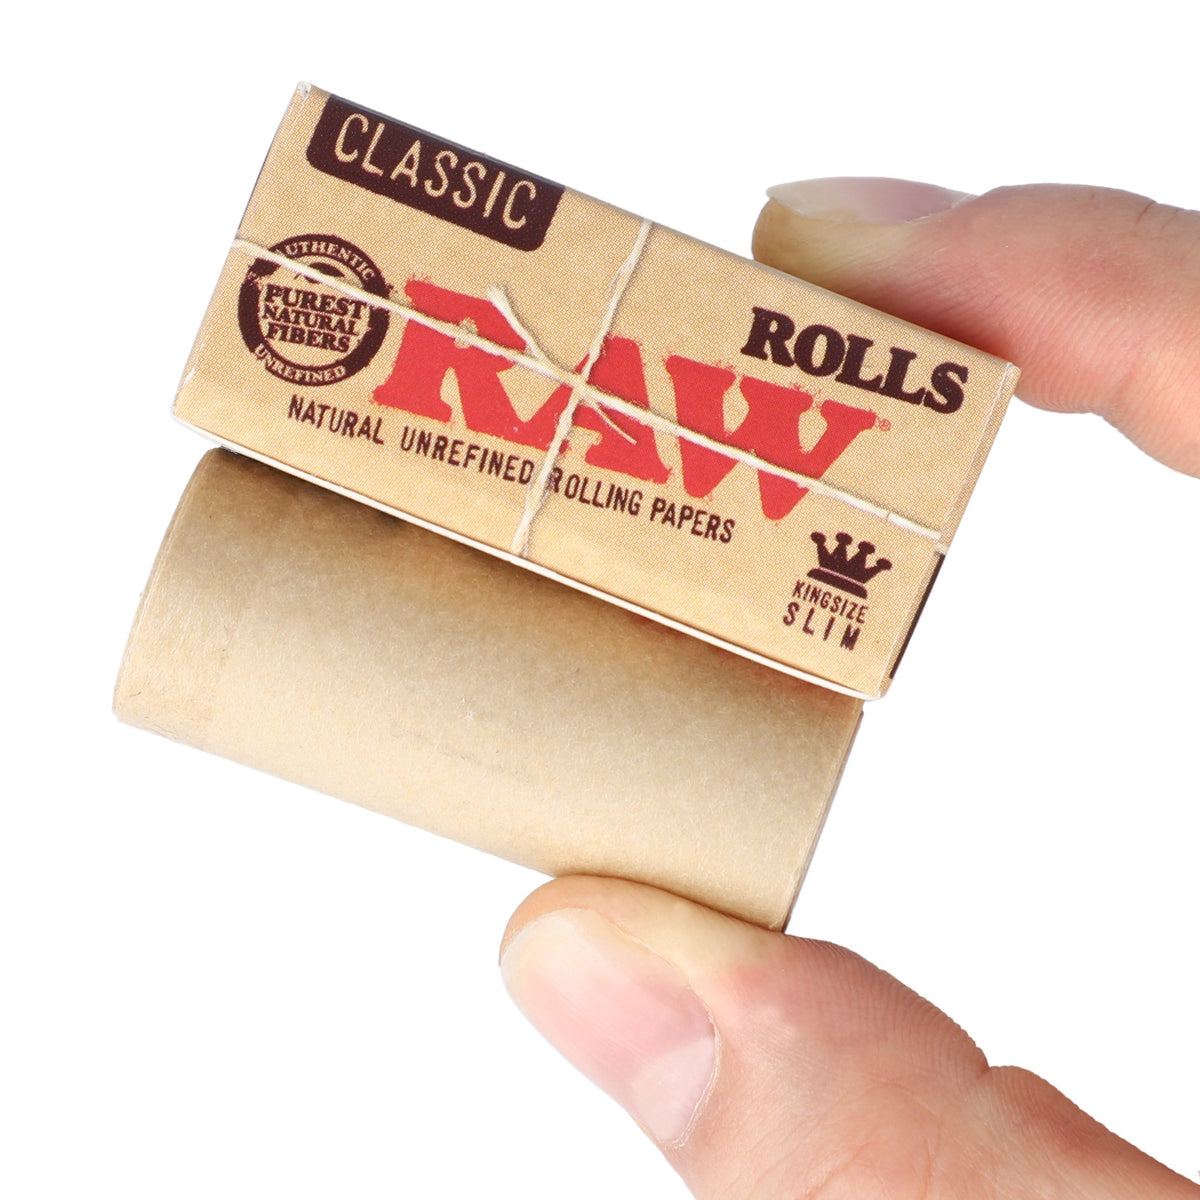 RAW Classic Paper Rolls King Size Slim - 5 Meters Rolling Papers WAR00344-1/24 esd-official